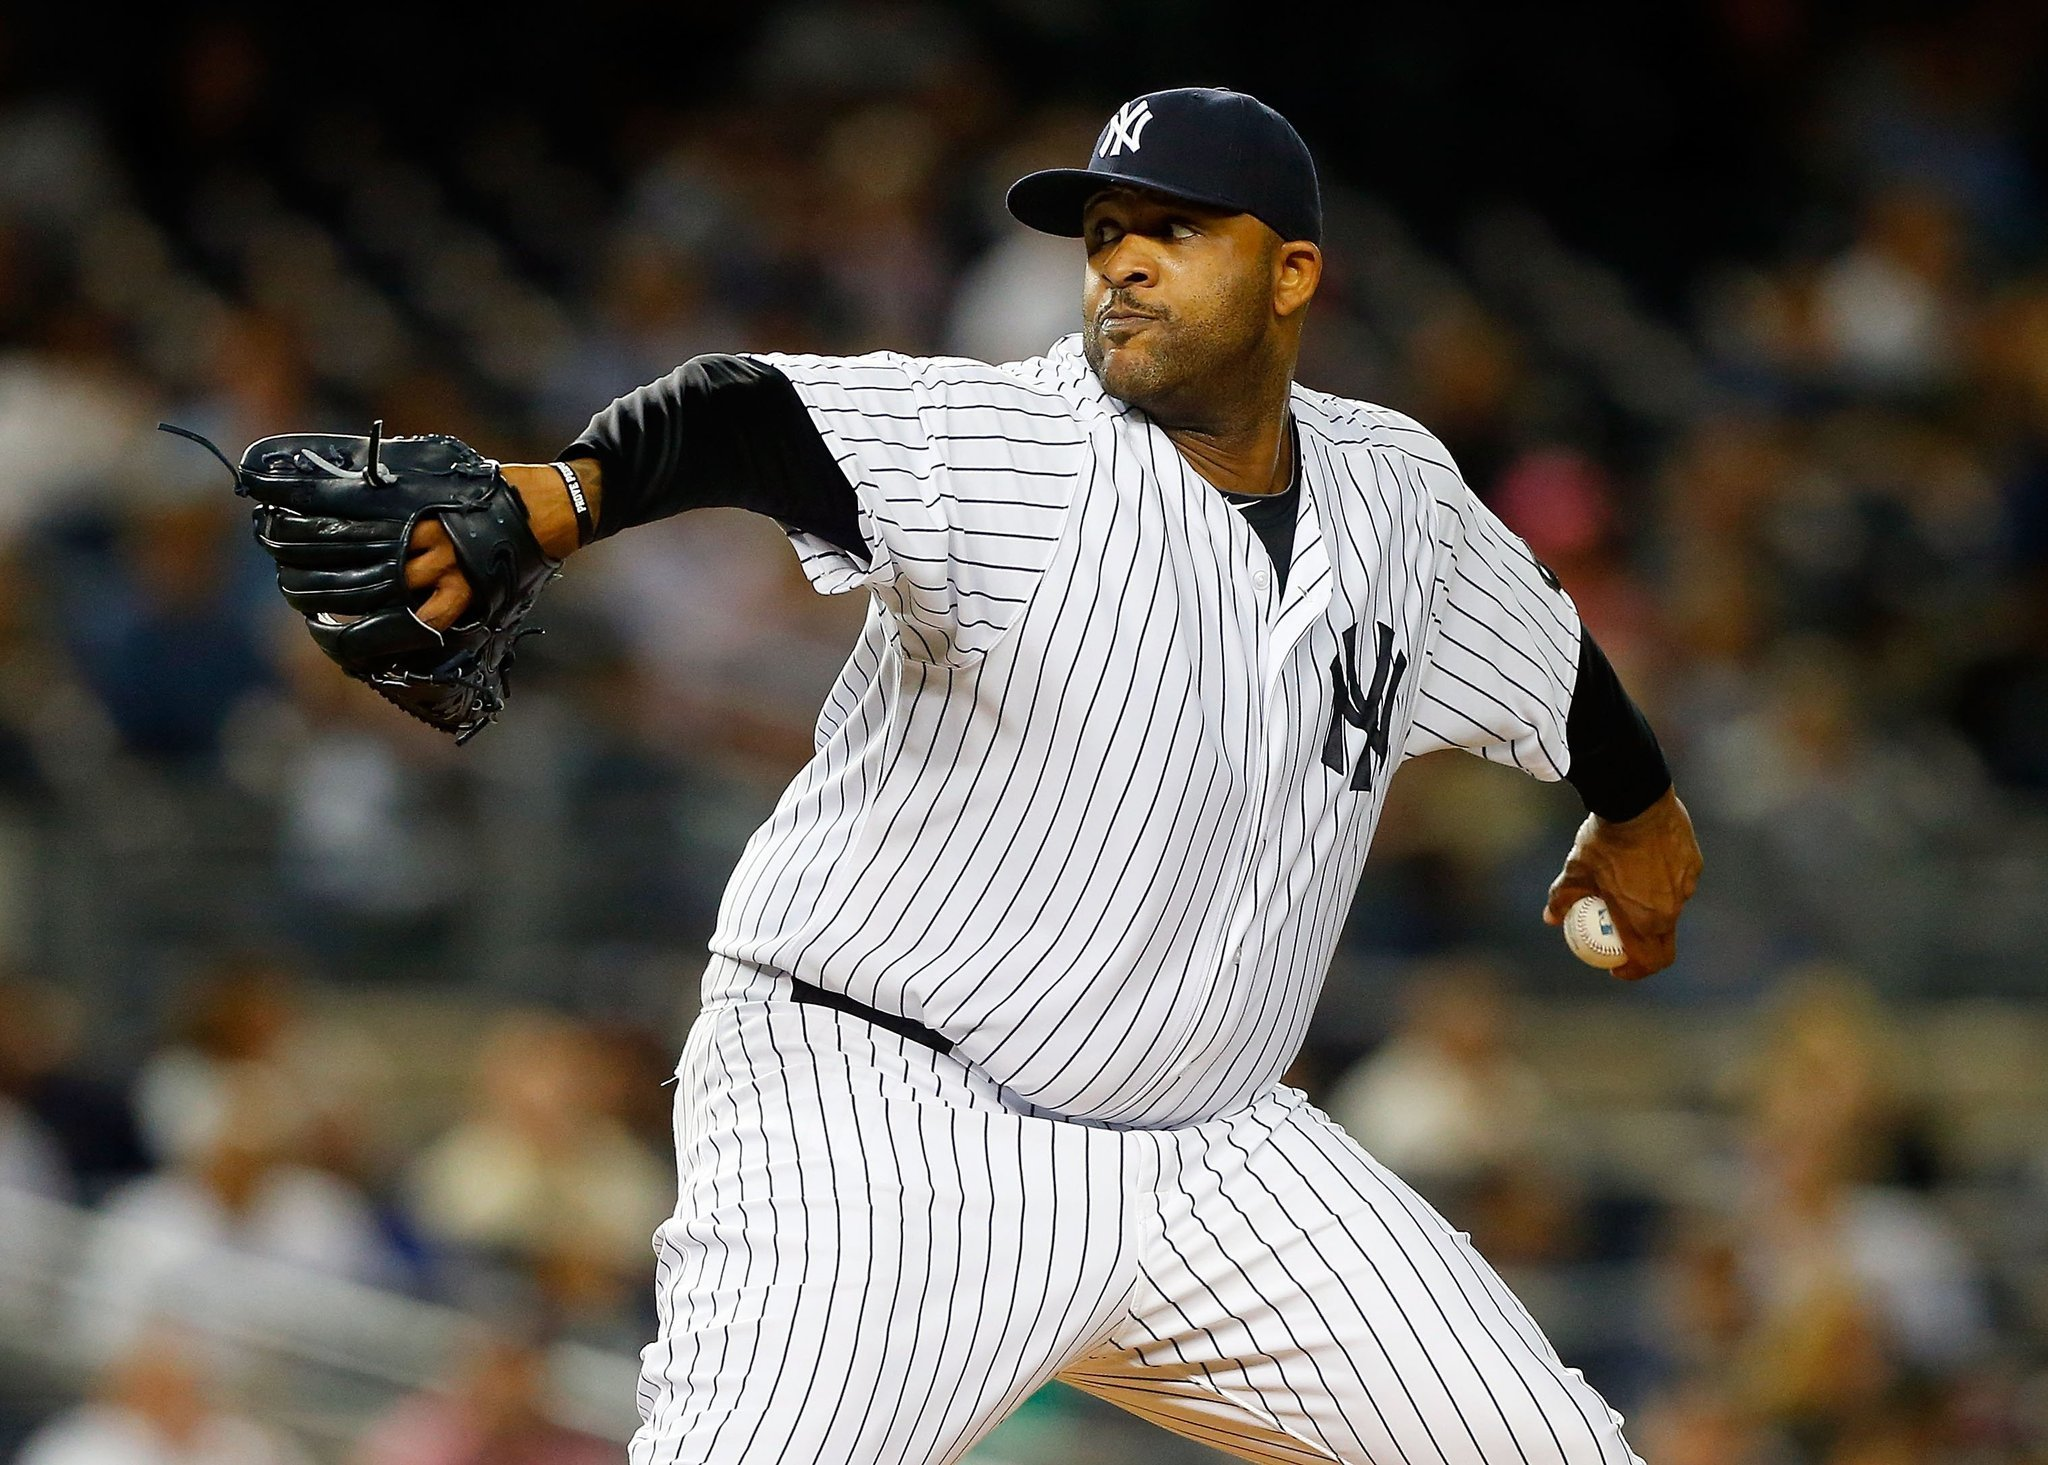 cc sabathia - photo #14